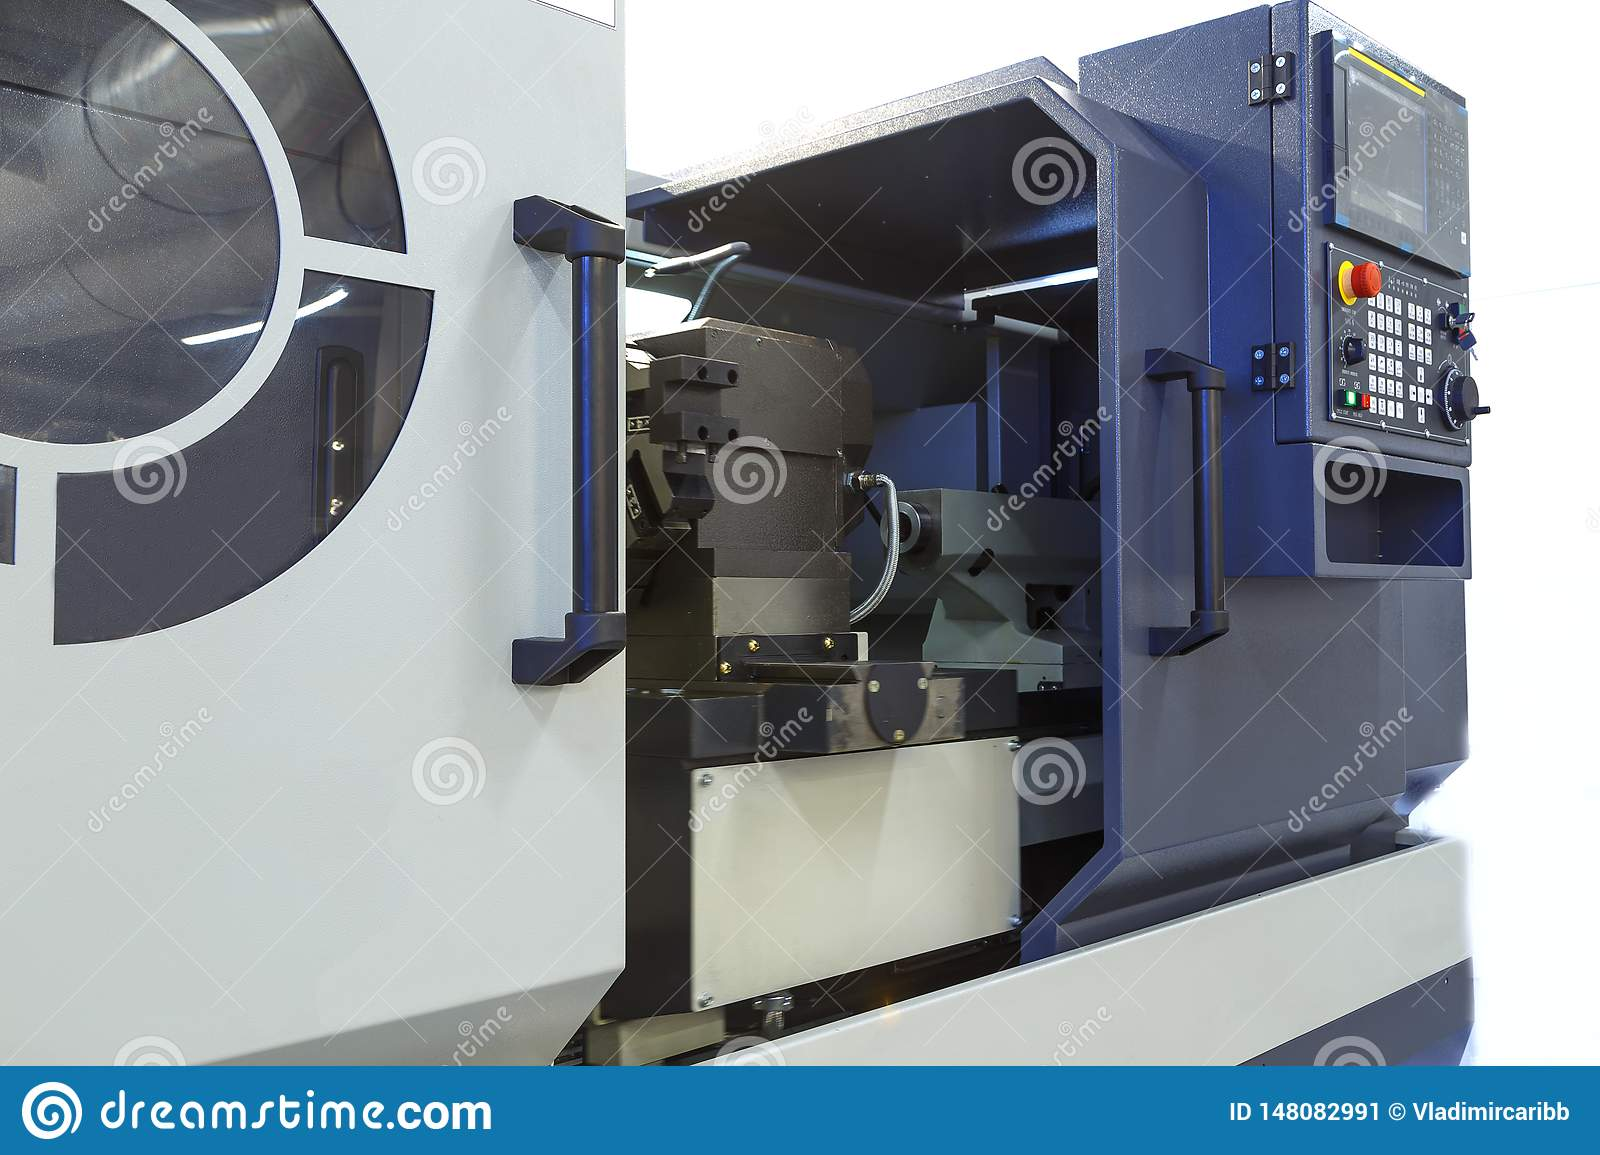 High Precision CNC Metalworking Machine With Numerical